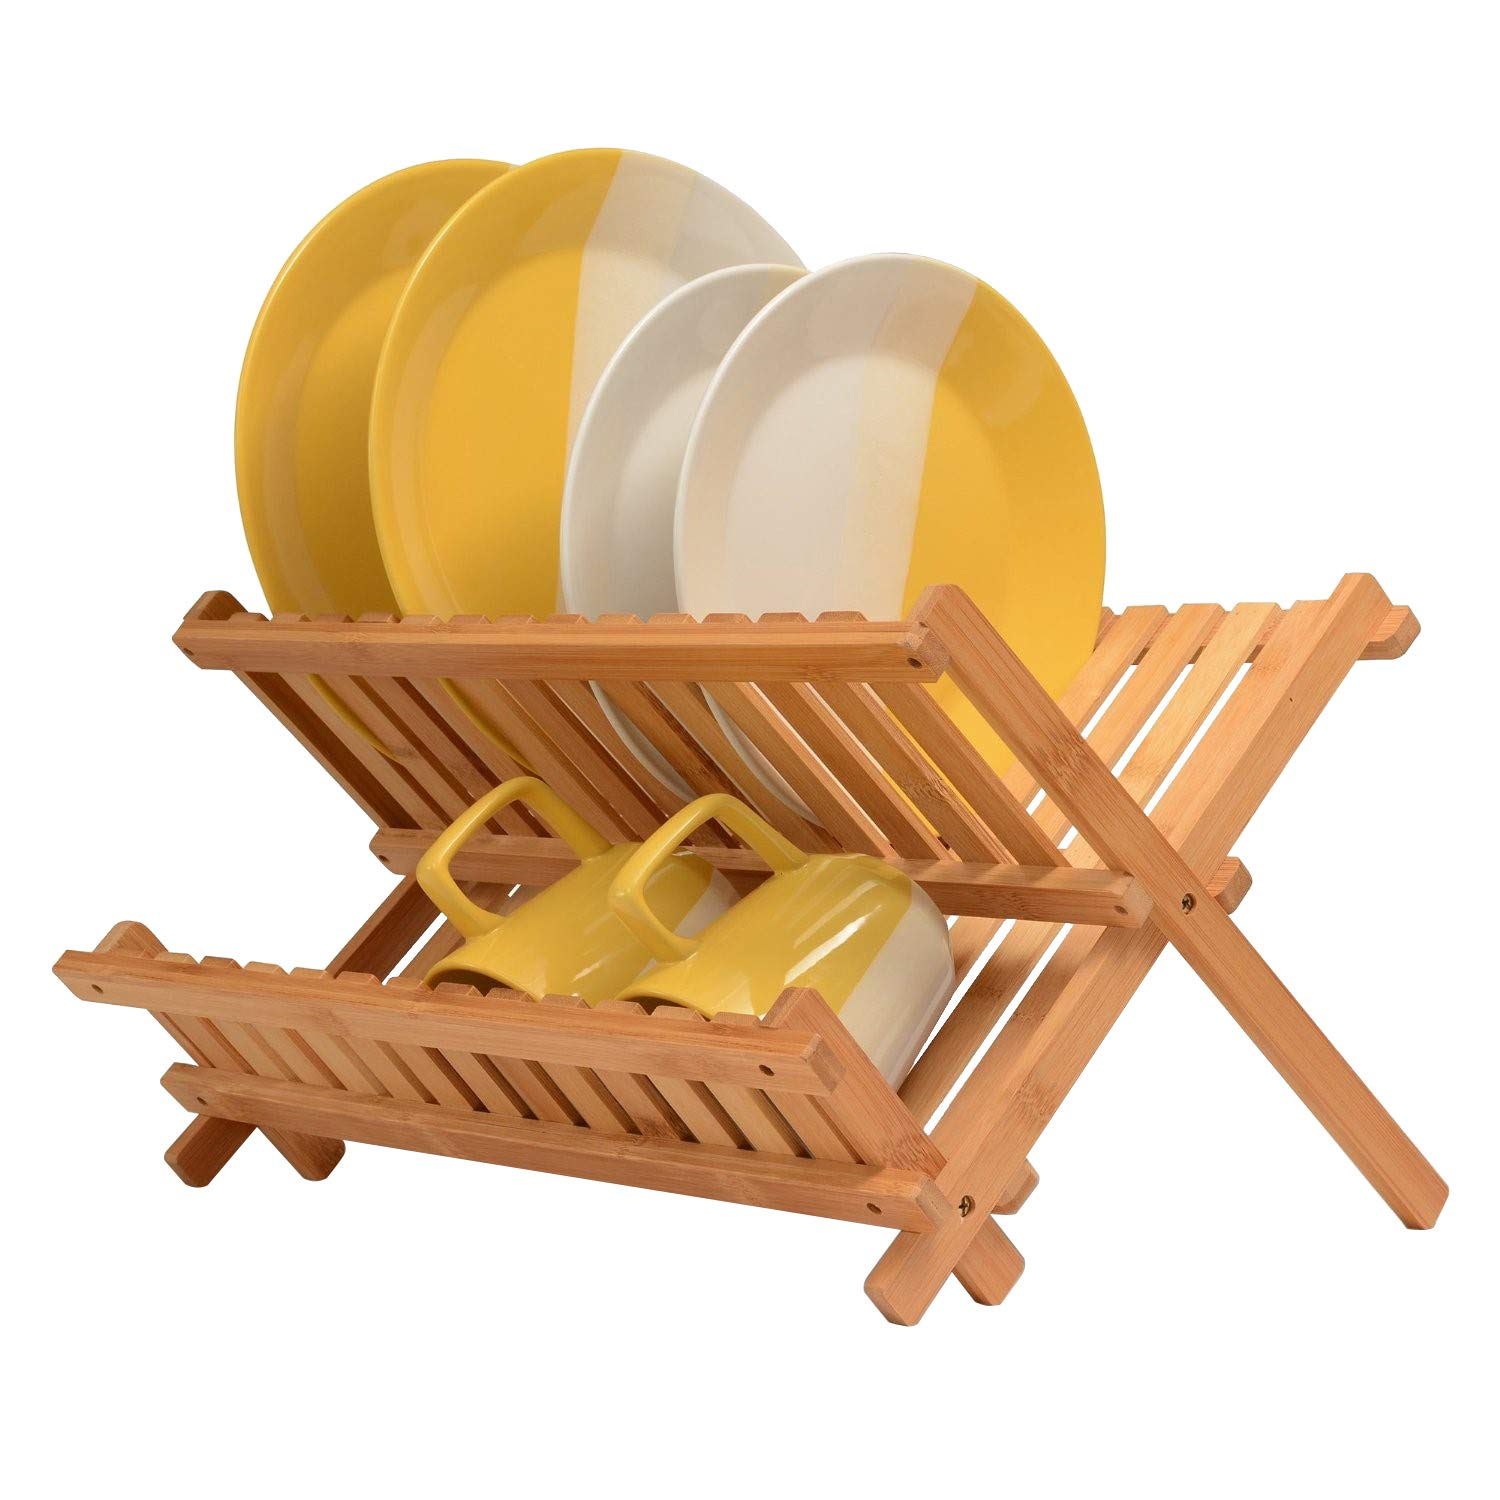 Bambusi Collapsible Dish Drying Rack - Bamboo Kitchen Folding Dish Rack & Plate Holder | Compact & Foldable Dish Drainer by Bambüsi